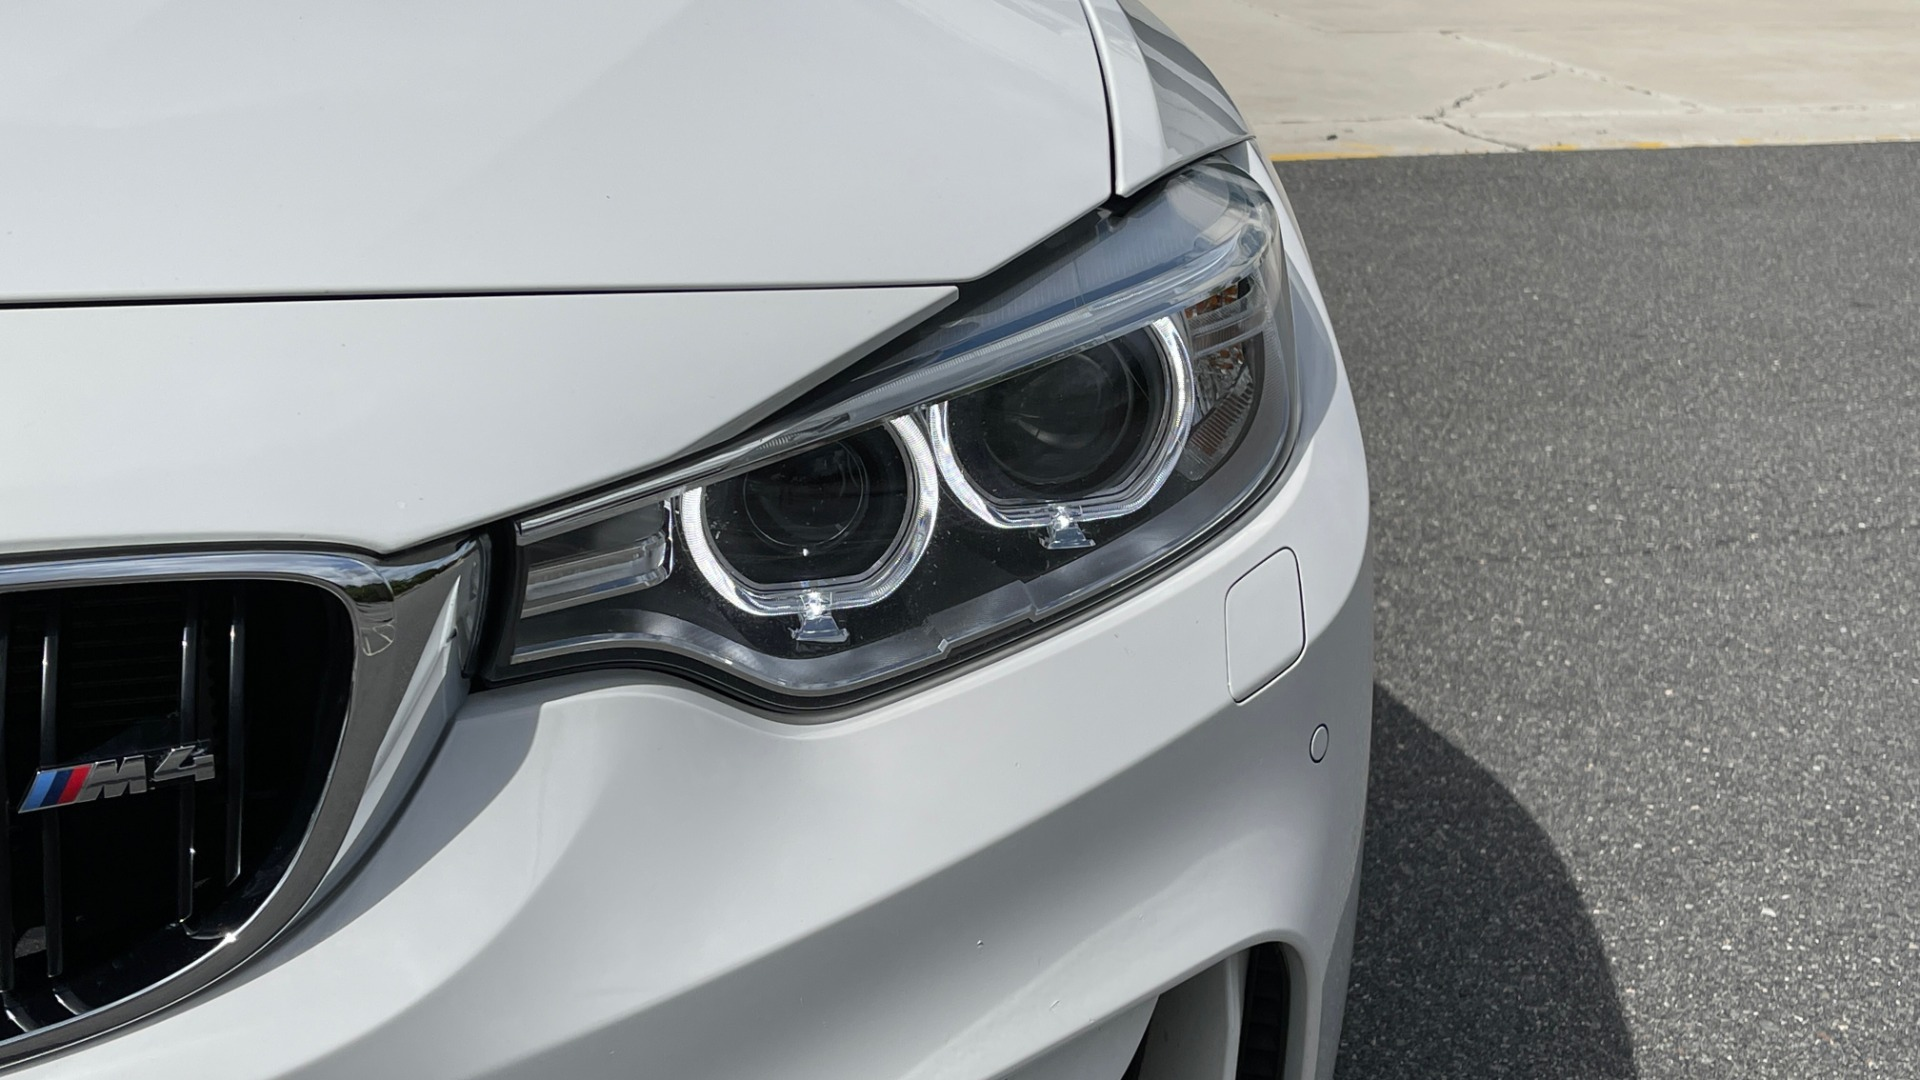 Used 2016 BMW M4 CONVERTIBLE 3.0L / 7-SPD AUTO / EXECUTIVE / ADAPT M SUSP / REARVIEW for sale $53,999 at Formula Imports in Charlotte NC 28227 26